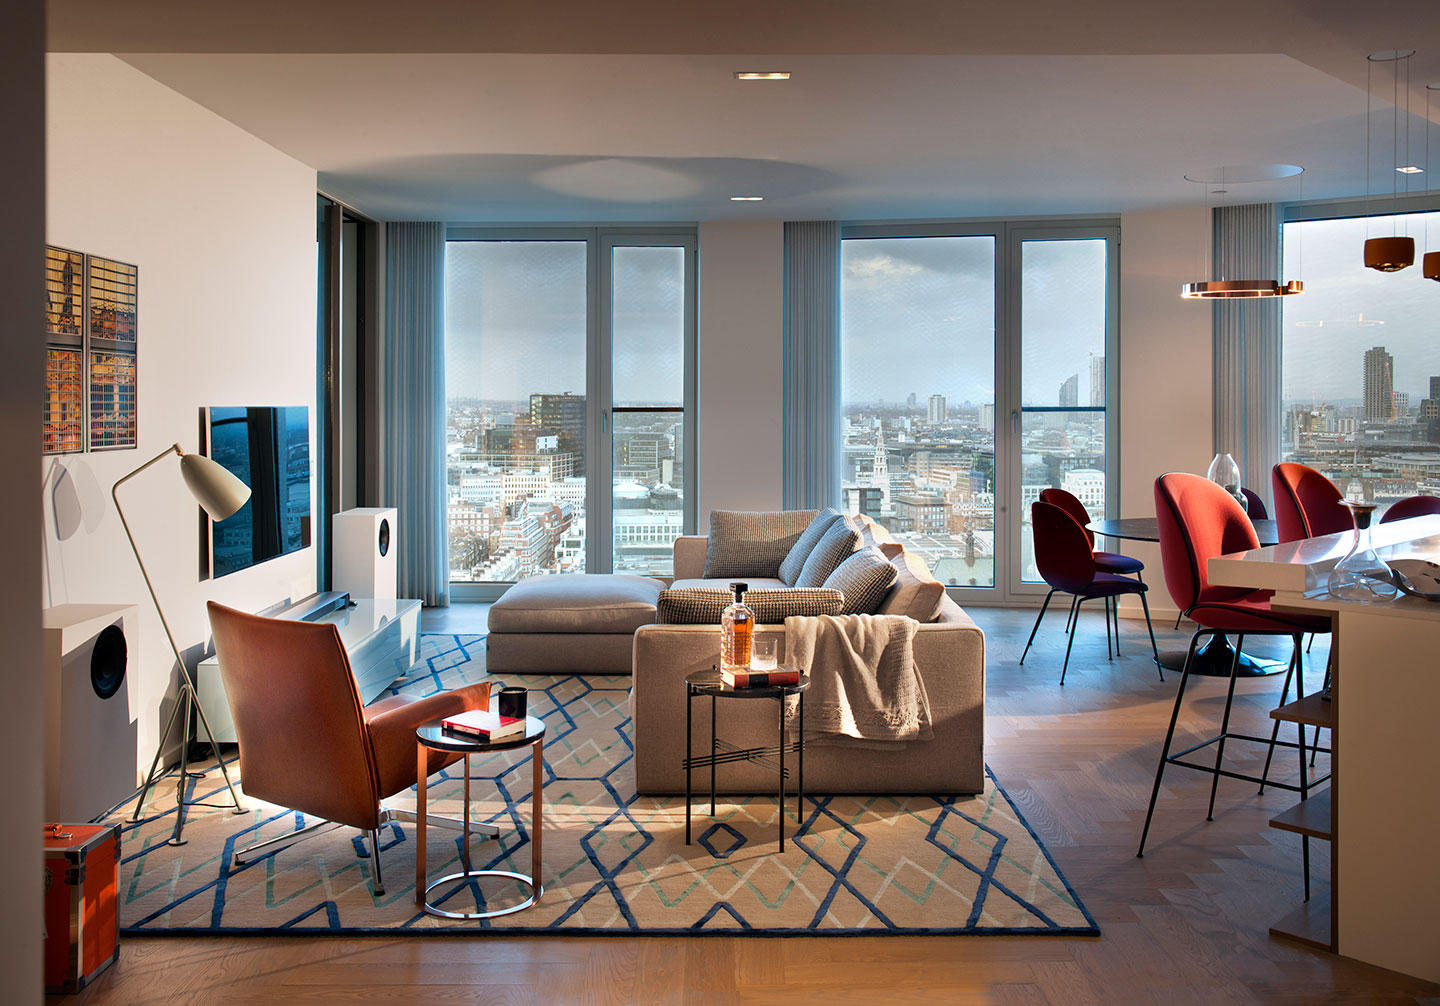 A beautifully designed open space in a luxury designed Southbank Tower interior overlooking Central London